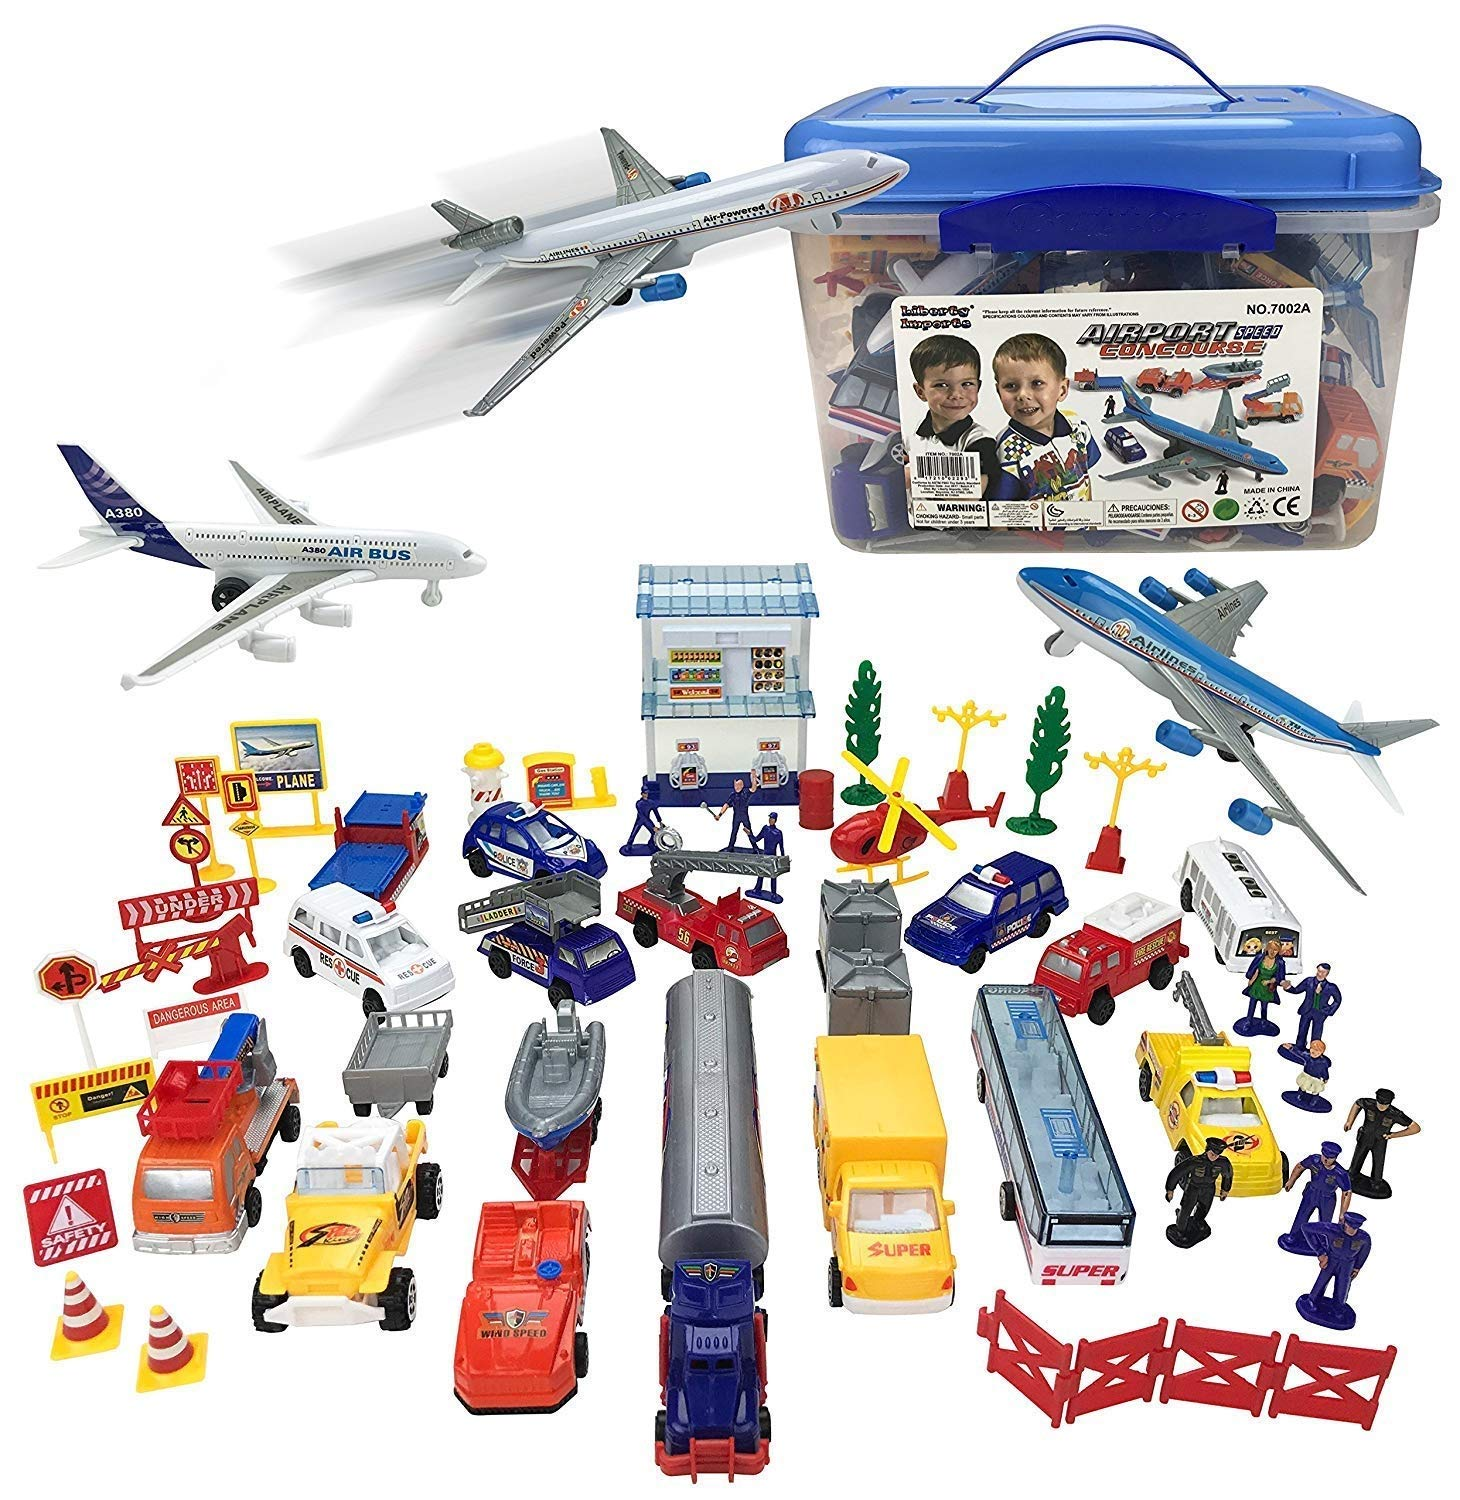 AMPERSAND SHOPS Complete Airport Concourse Vehicle Airplane Workers Cops Police Figurines Accessories Playset with Carrying Case Storage Box by AMPERSAND SHOPS (Image #1)